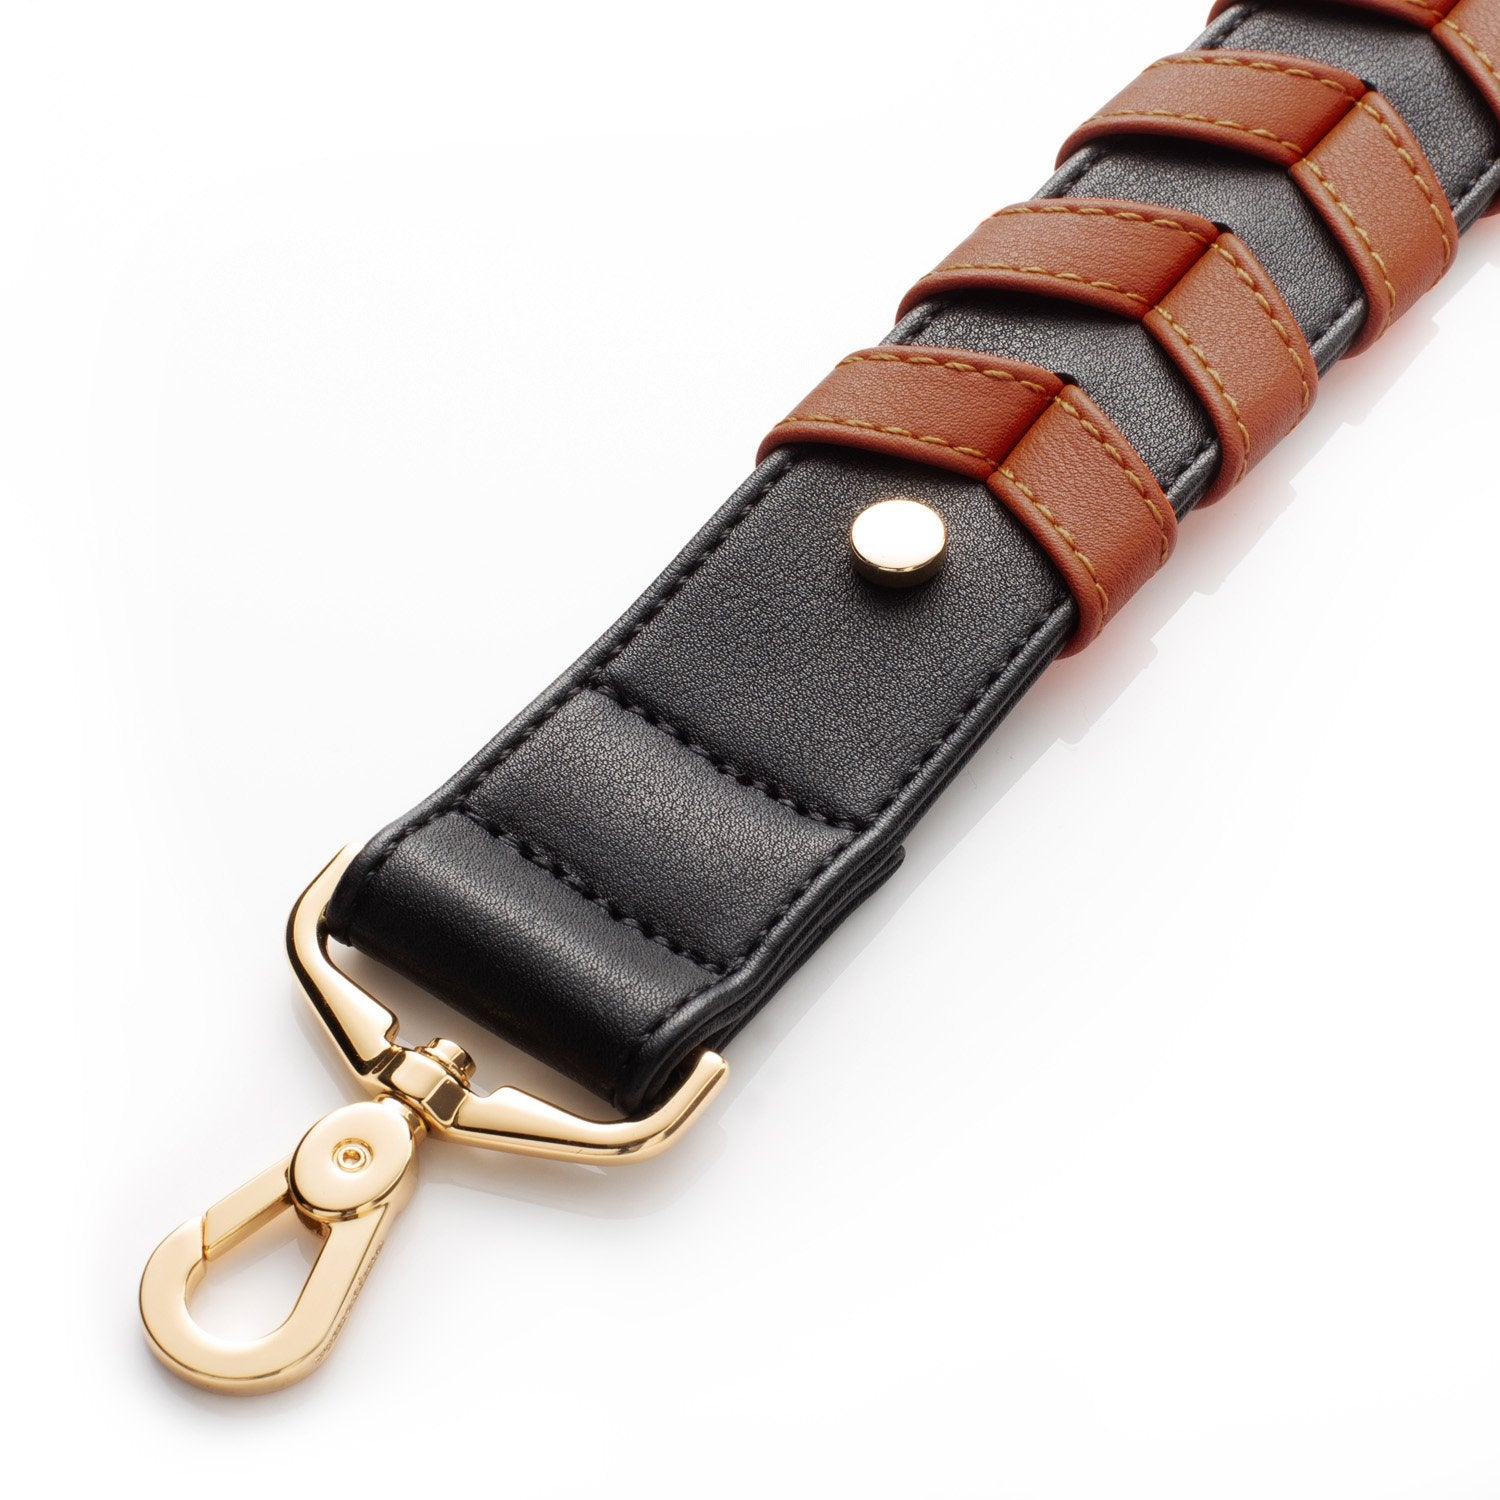 BRAIDED STRAP - DARK BROWN